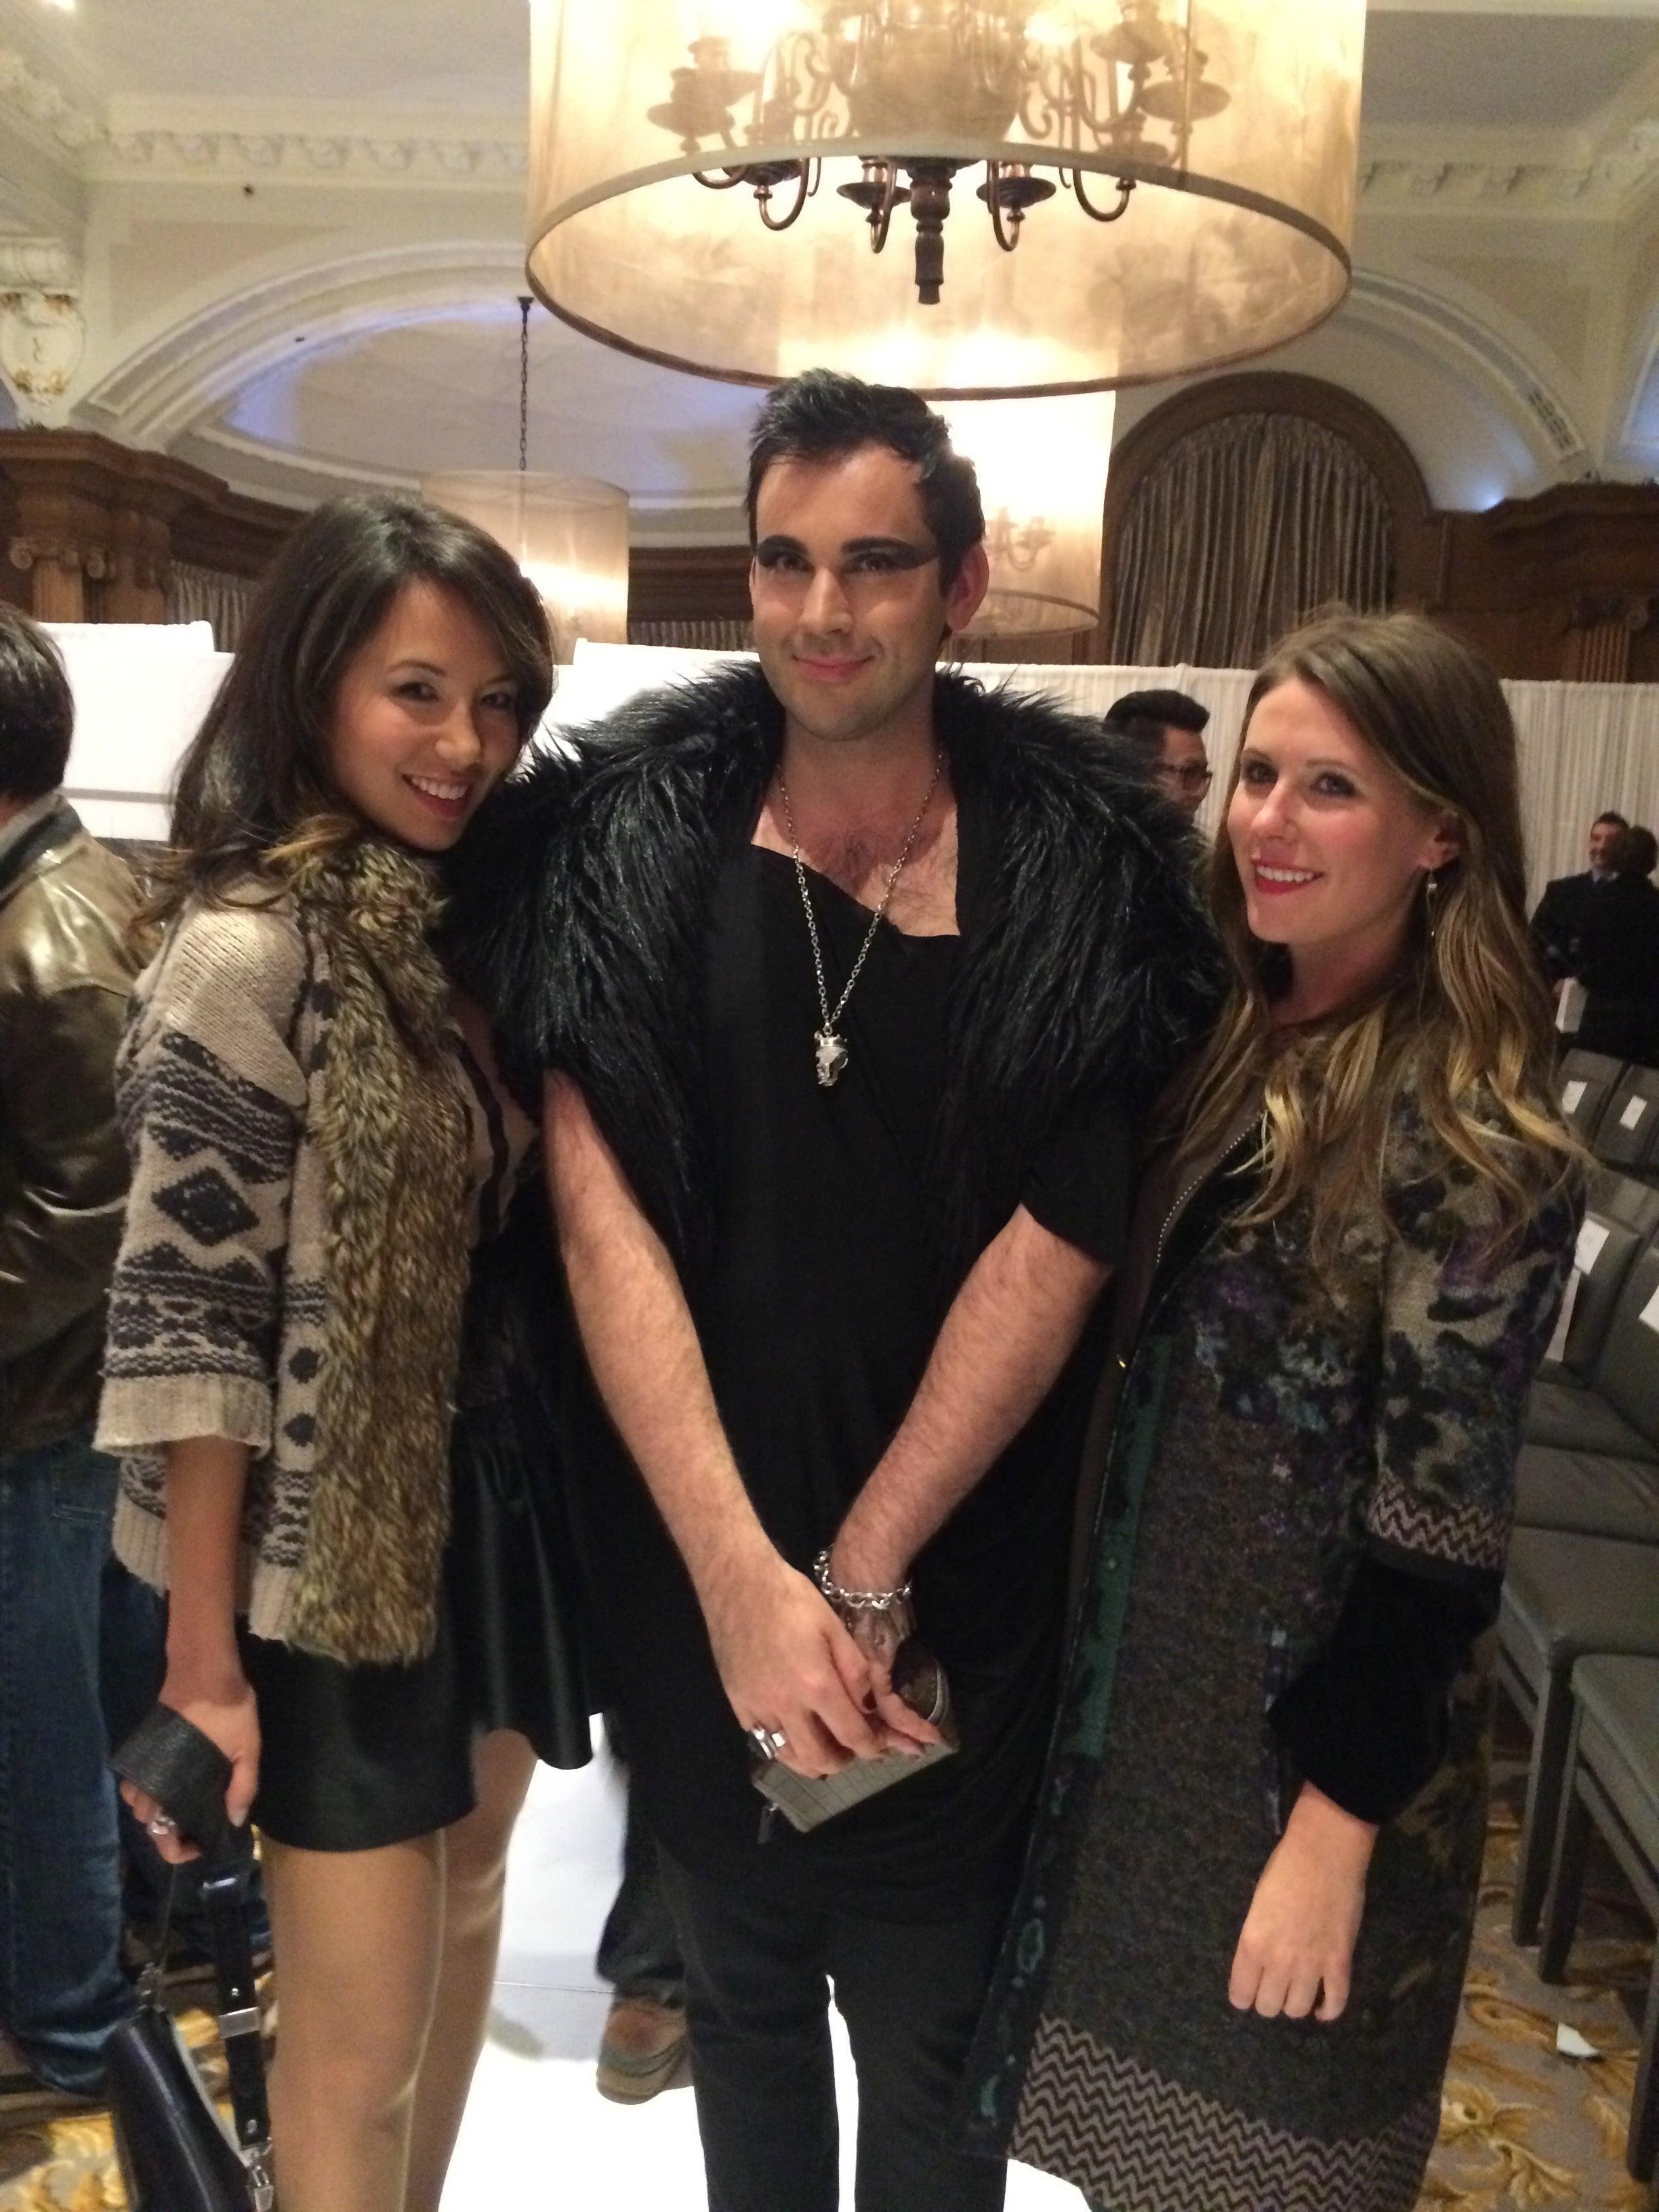 Jigme Nehring and Courtney Watkins of Mine & Yours with Justin Voltic from HUSH Magazine